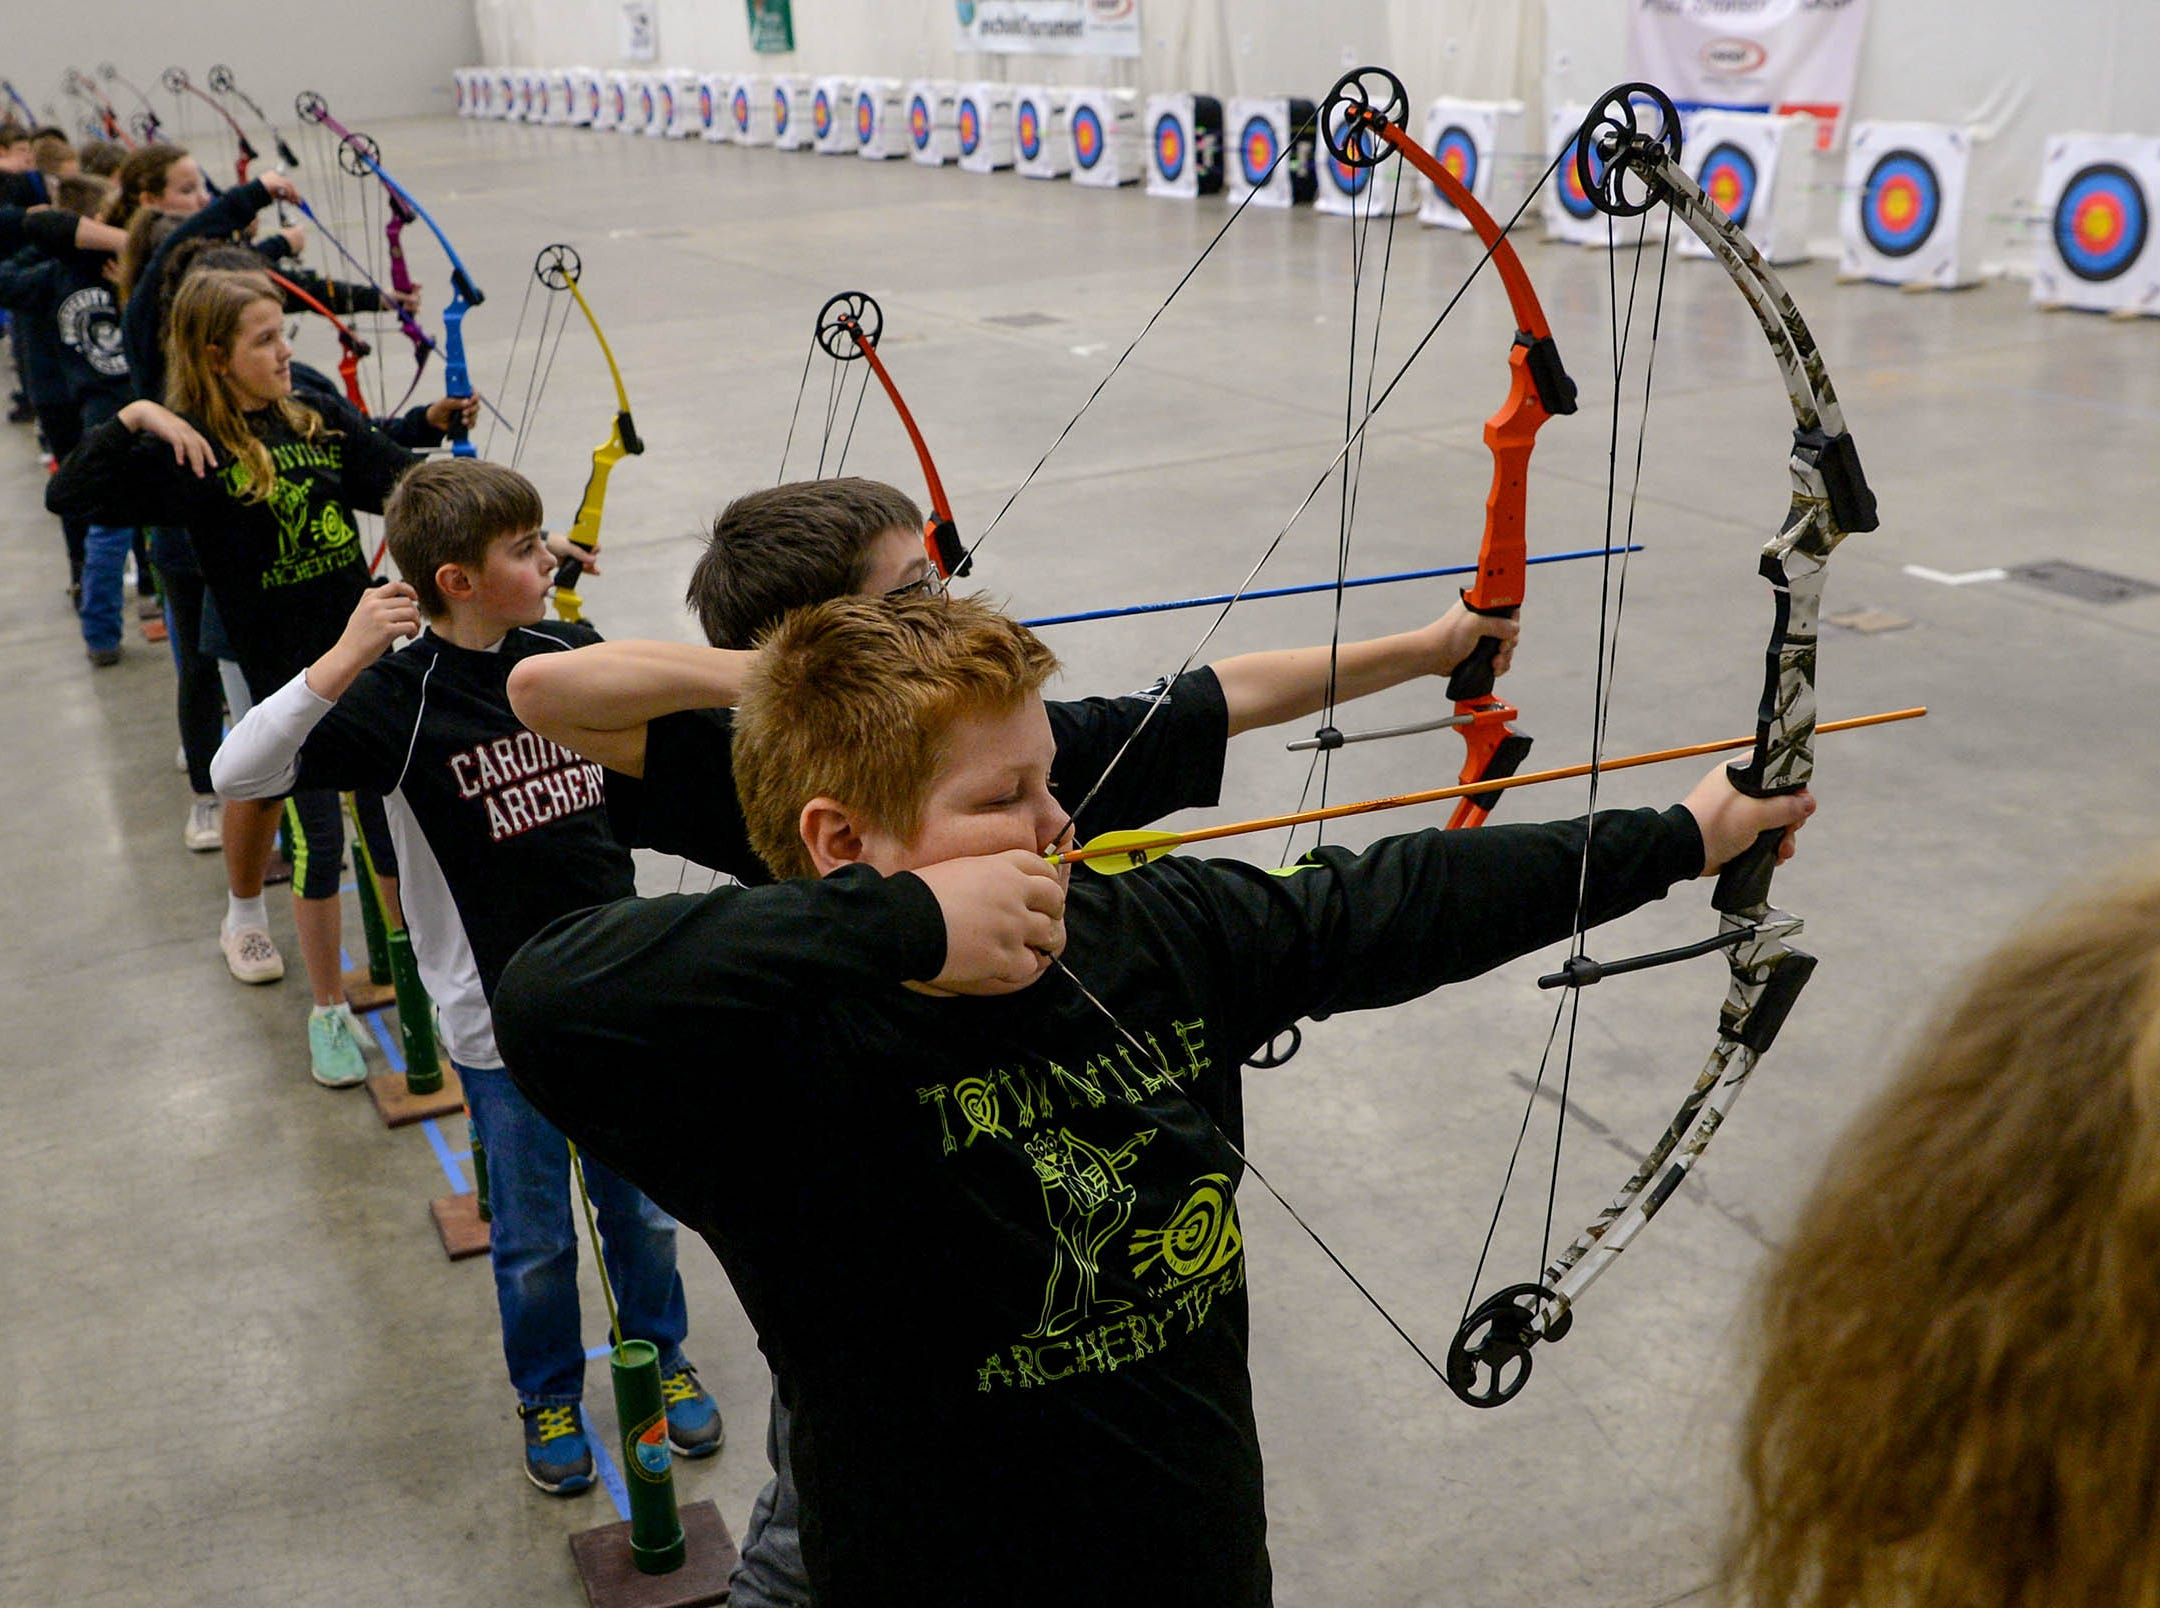 Deaven Alewine, a fourth-grade Townville Elementary School student, gets ready to release one of his five arrow shafts toward his target during the South Carolina Department of Natural Resources regional National Archery in the Schools Program (NASP) regional competition at the Anderson Civic Center Wednesday.  The program, which awards $50,000 in scholarships to high school seniors, is a joint venture between state departments of Education and Wildlife. The competition in Anderson, leading up to the state finals March 26-28 in Sumter, had 950 children from 14 elementary and 23 high schools around the state.  Pendelton High School finished first in the IBO competition and second in the bullseye for the high school division, Riverside Middle School in Pendleton finished first in the IBO and bullseye competitions for middle schools, and LaFrance Elementary team finished first.